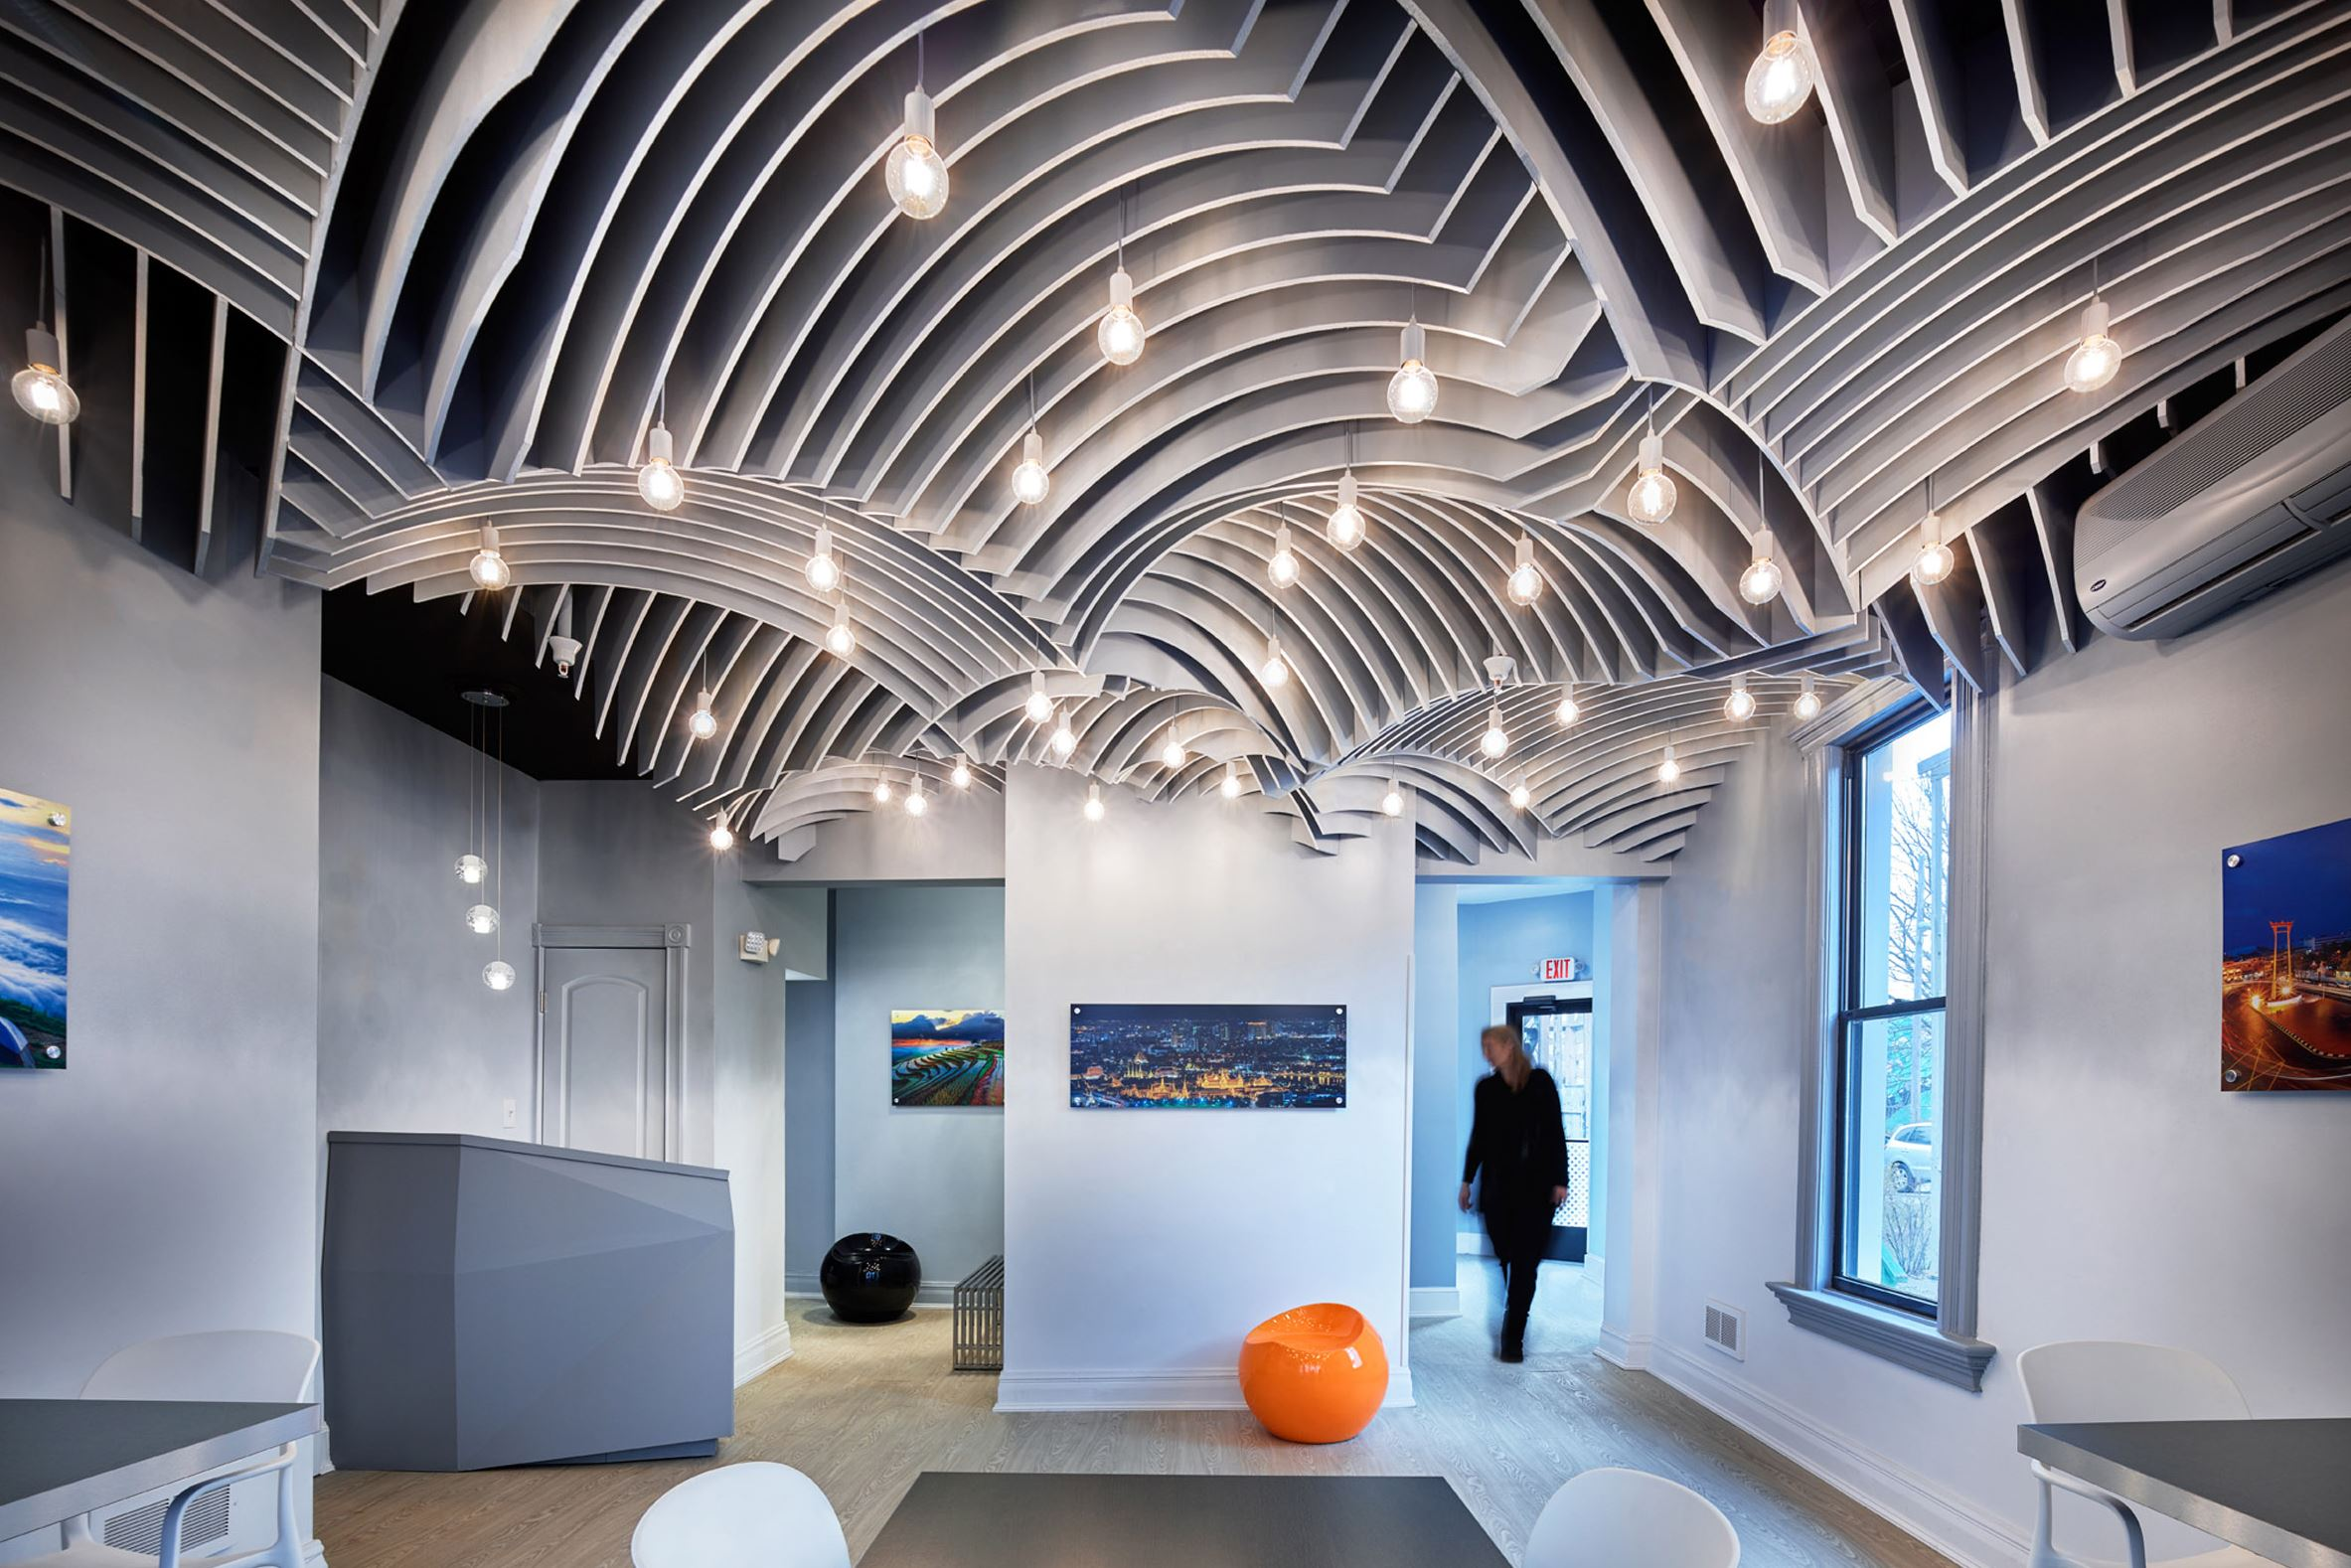 The ceiling at Senyai in Shadyside is inspired by the vaulted geometry of ancient Thai architecture and was designed and produced by SoA faculty with the help of students.